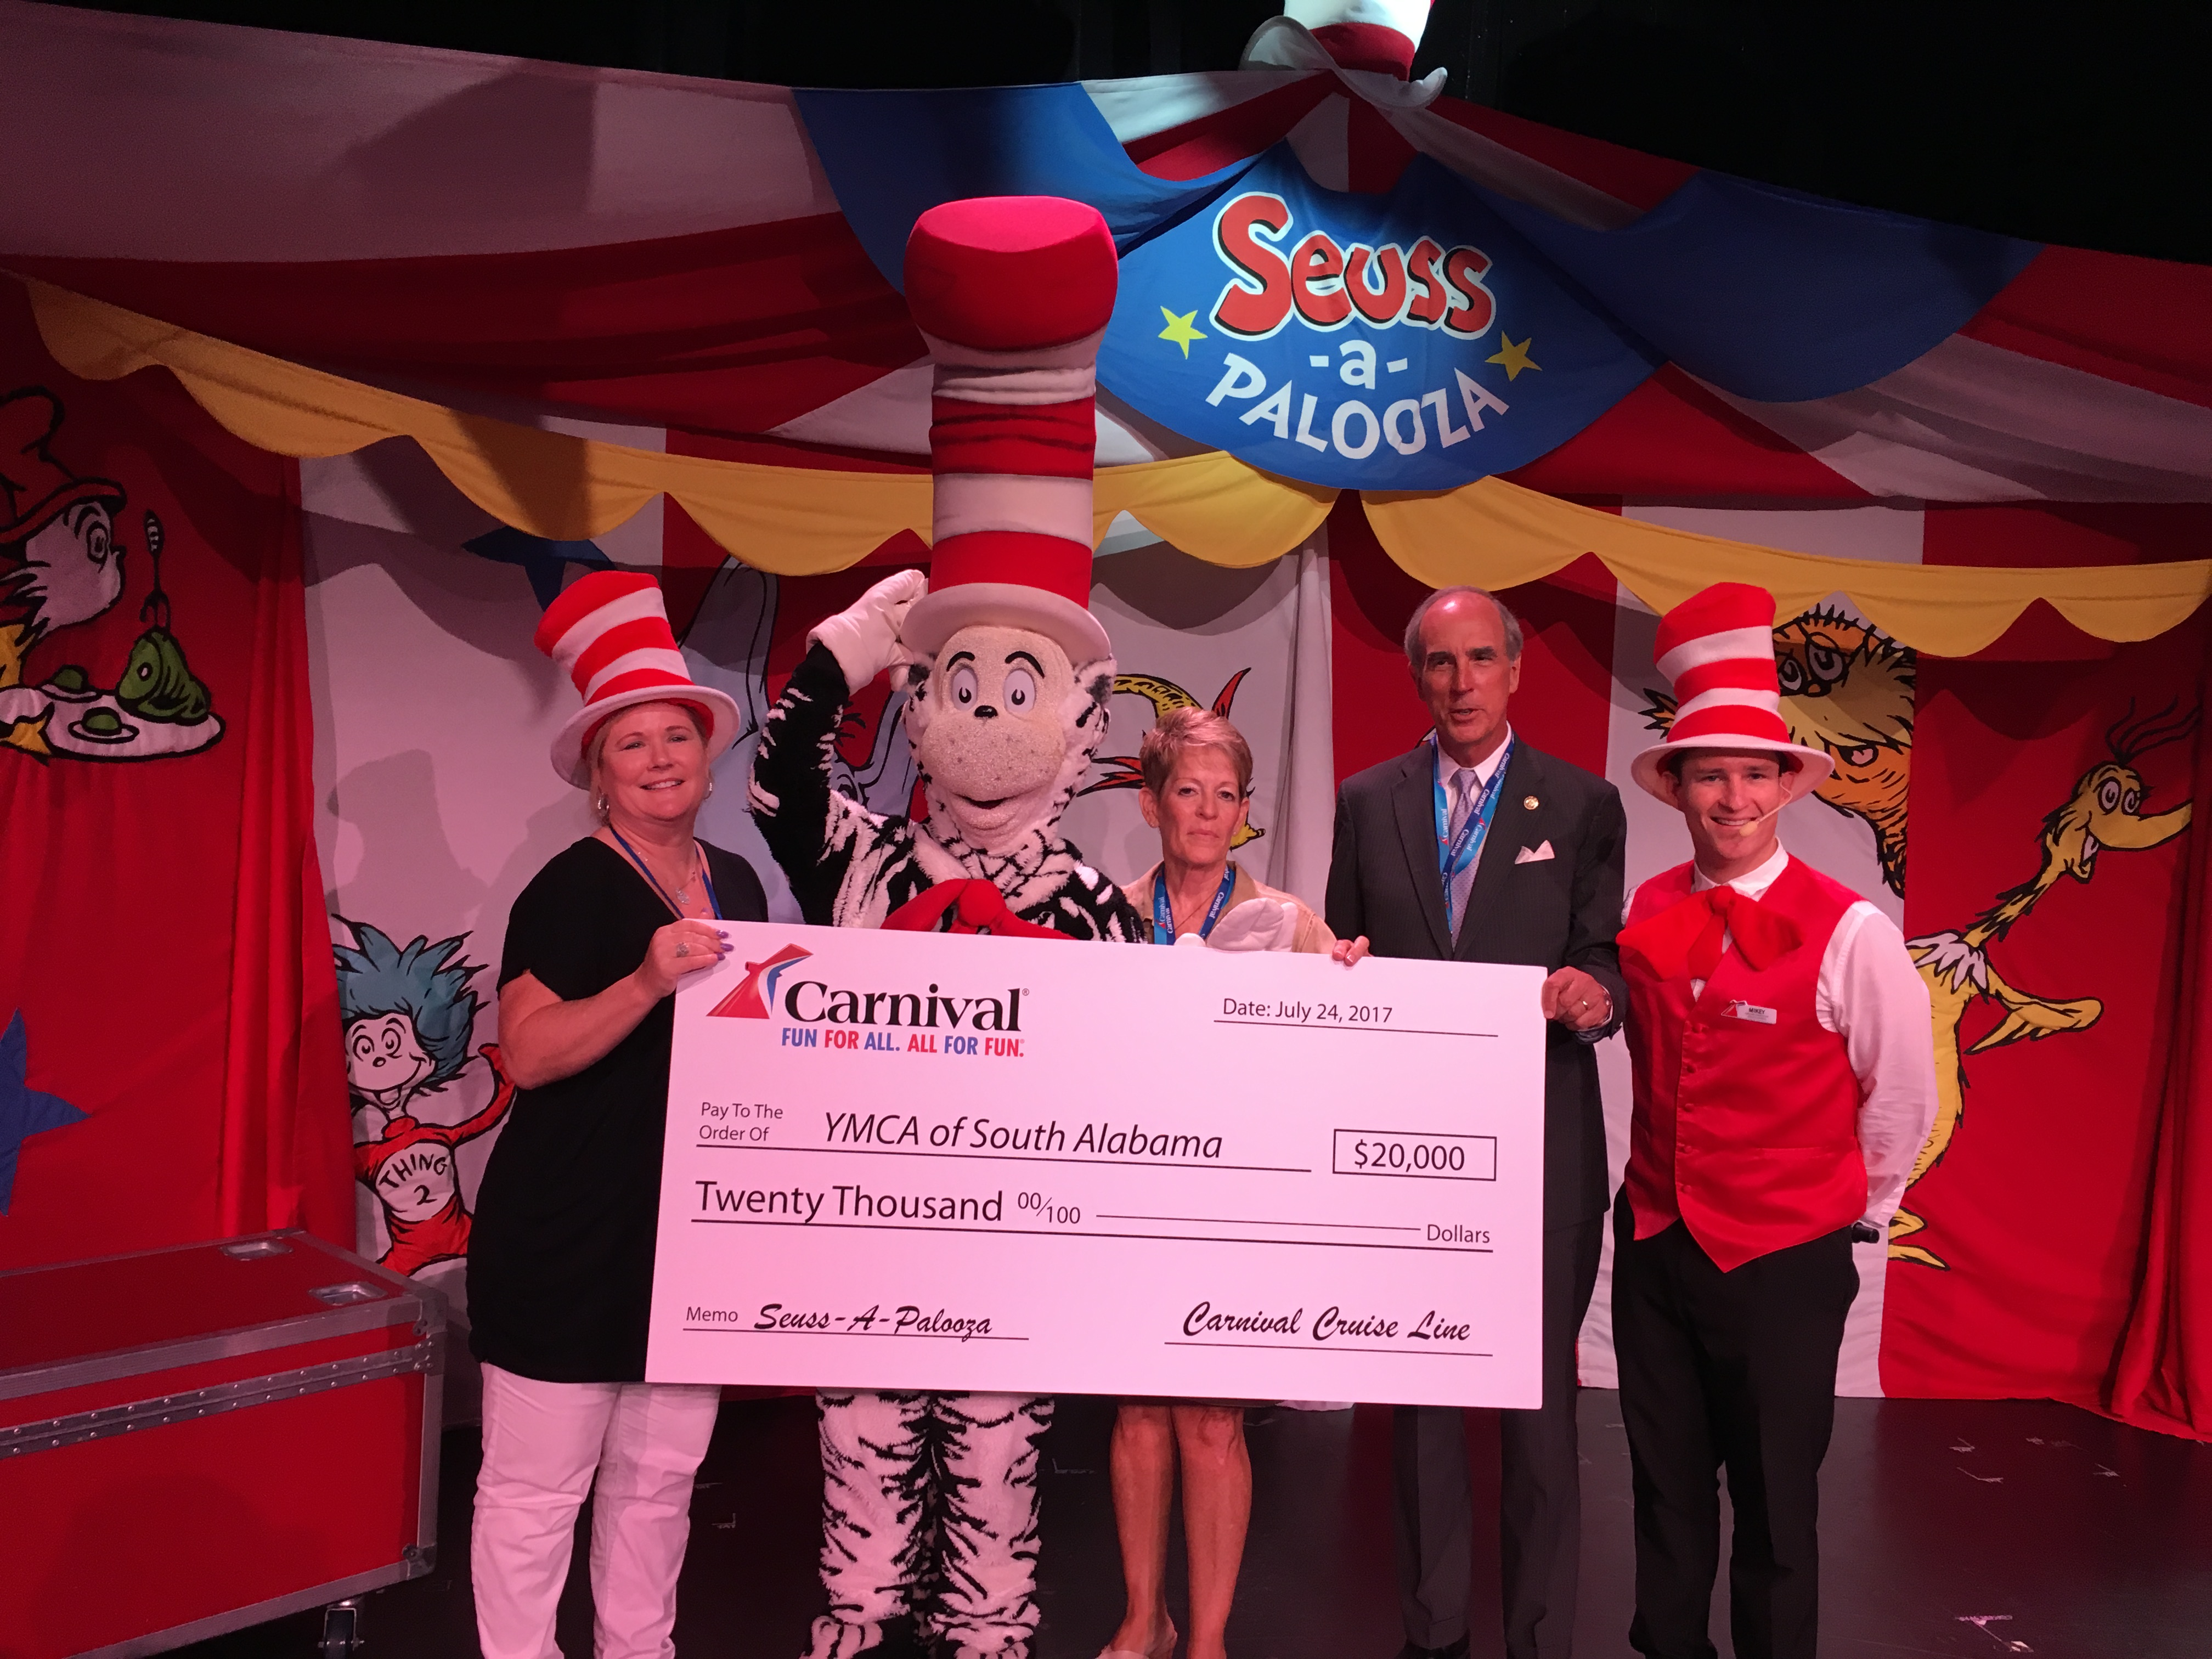 Carnival Cruise Line Hosts Seuss-a-Palooza Event Aboard Carnival Fantasy in Mobile For Kids from the YMCA of South Alabama